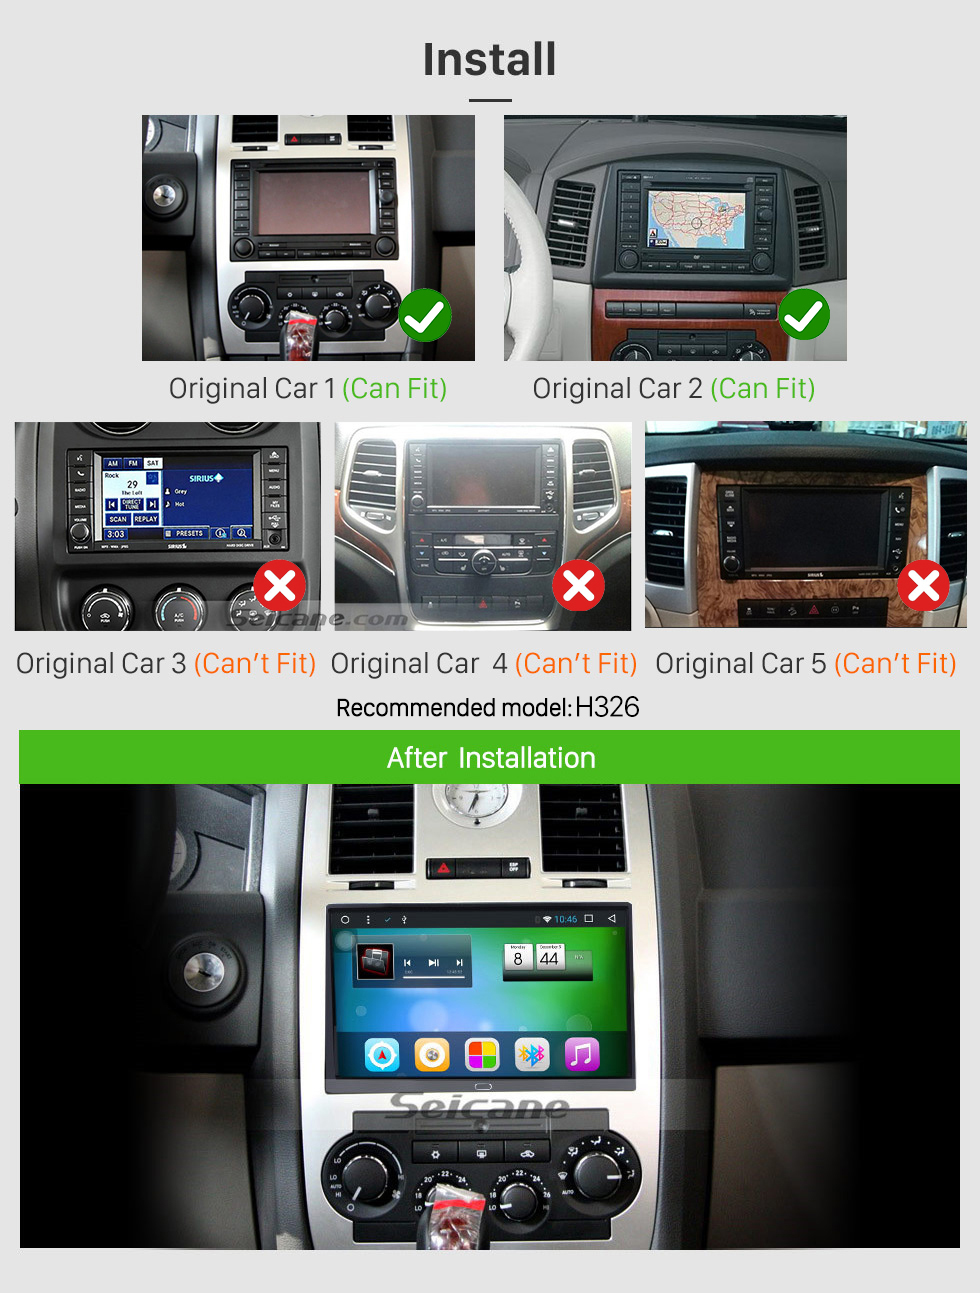 Seicane 9 inch Android 8.1 2004 2005 2006 2007 Jeep Cherokee Commander Compass Patriot Wrangler GPS Navigation System with Bluetooth 1024*600 Touch Screen TV Tuner USB AUX MP3 Steering Wheel Control